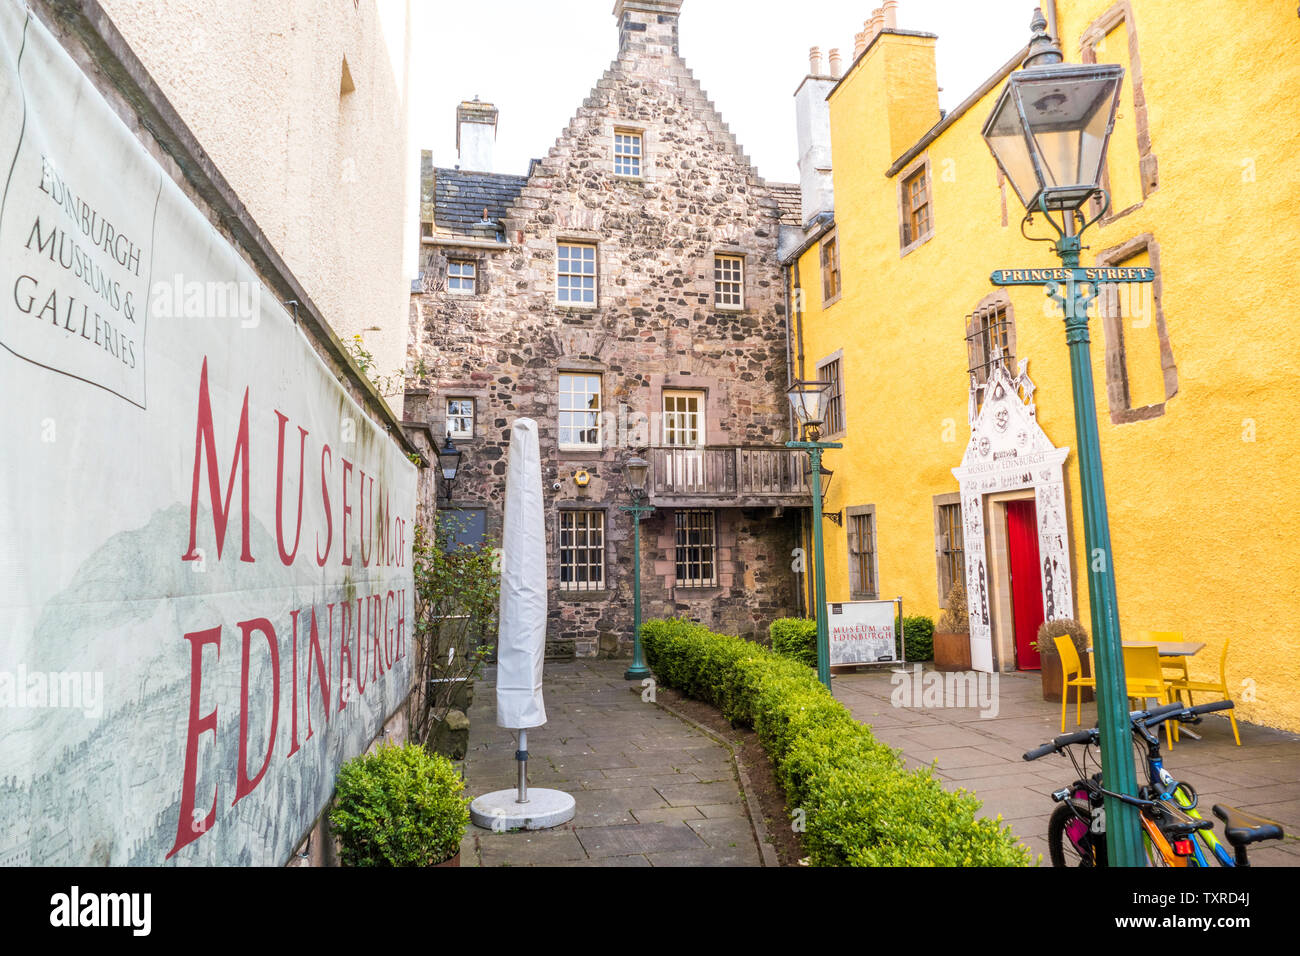 Museum of Edinburgh – a centuries old local history museum on The Royal Mile, with a collection about the town's origins, history & legends. Scotland. Stock Photo